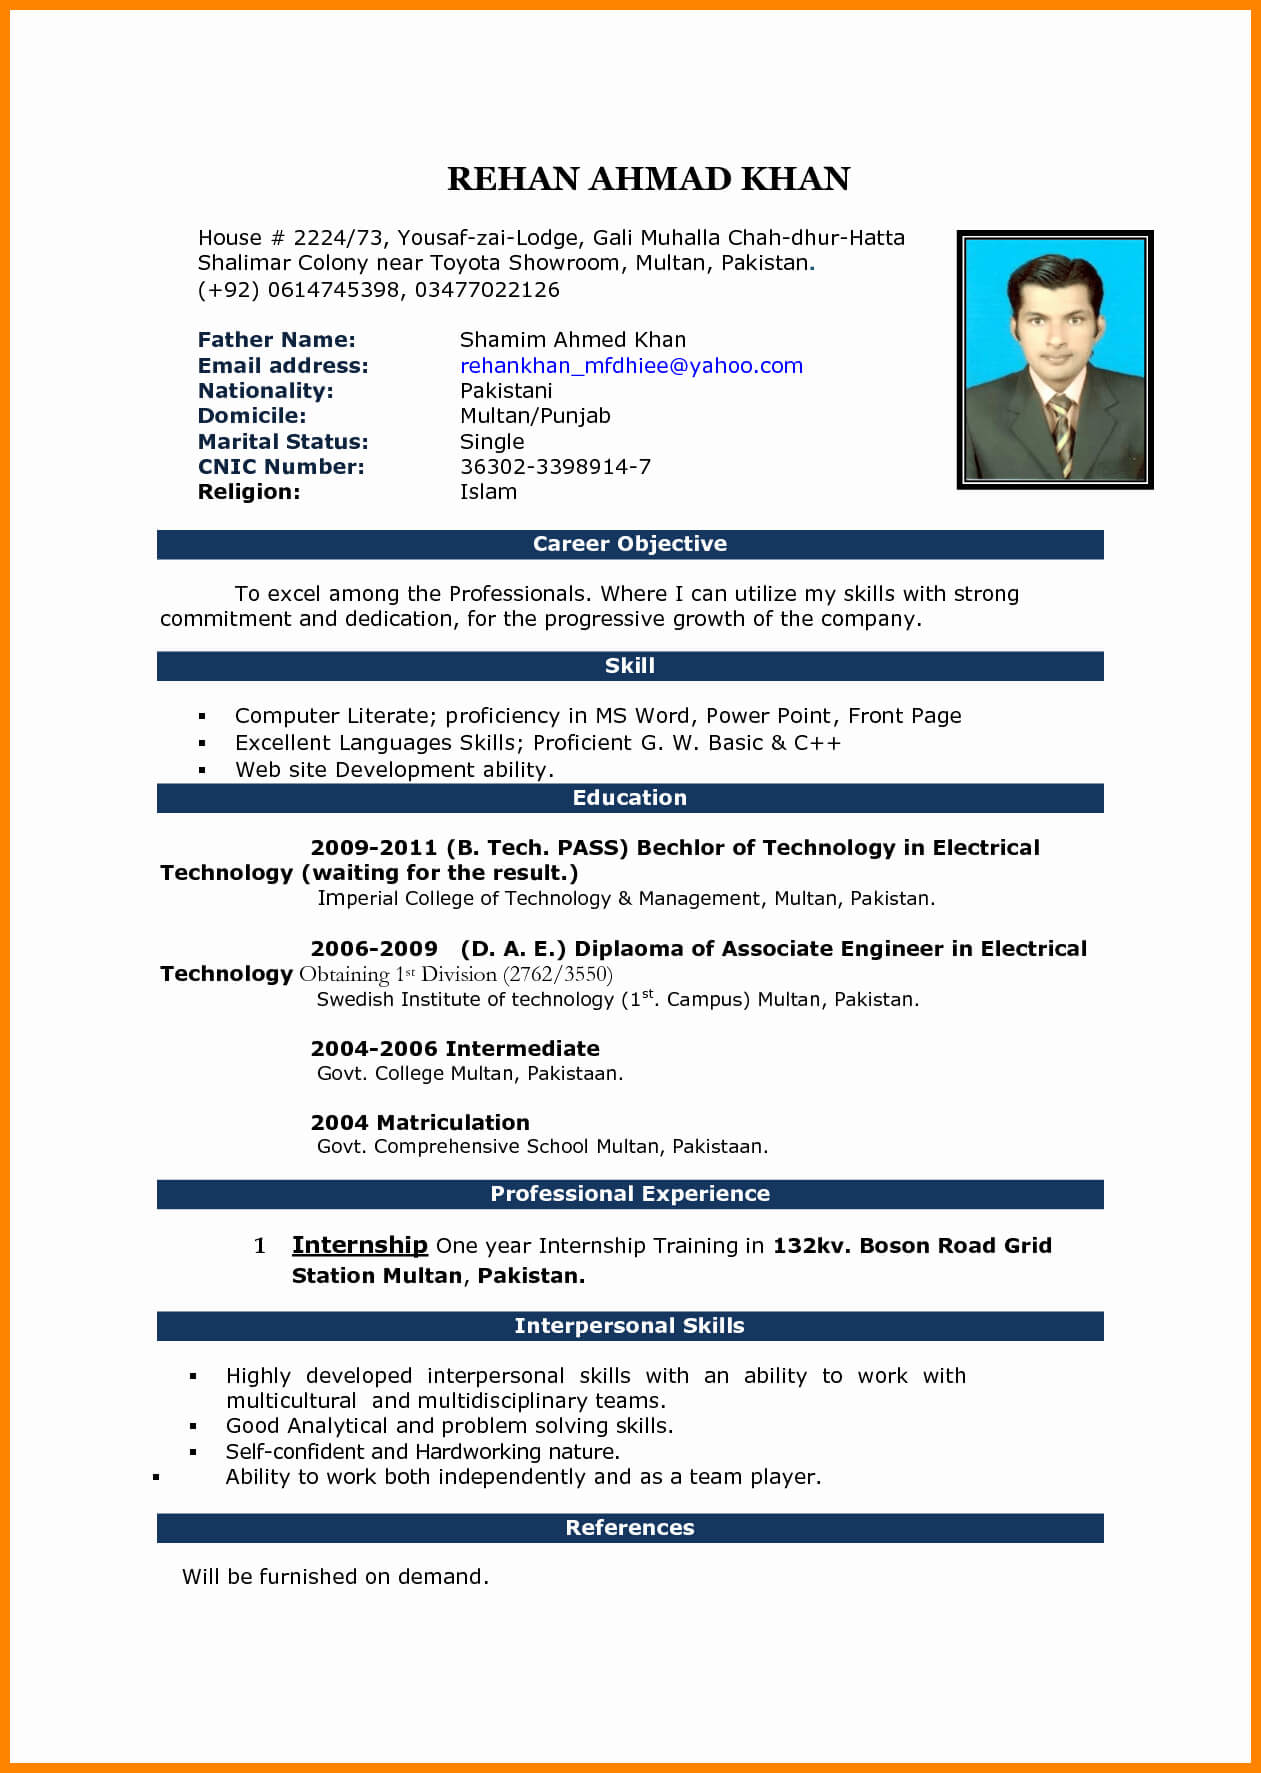 Word Resume Template Free Download Office Templates Cv Inside Resume Templates Word 2010